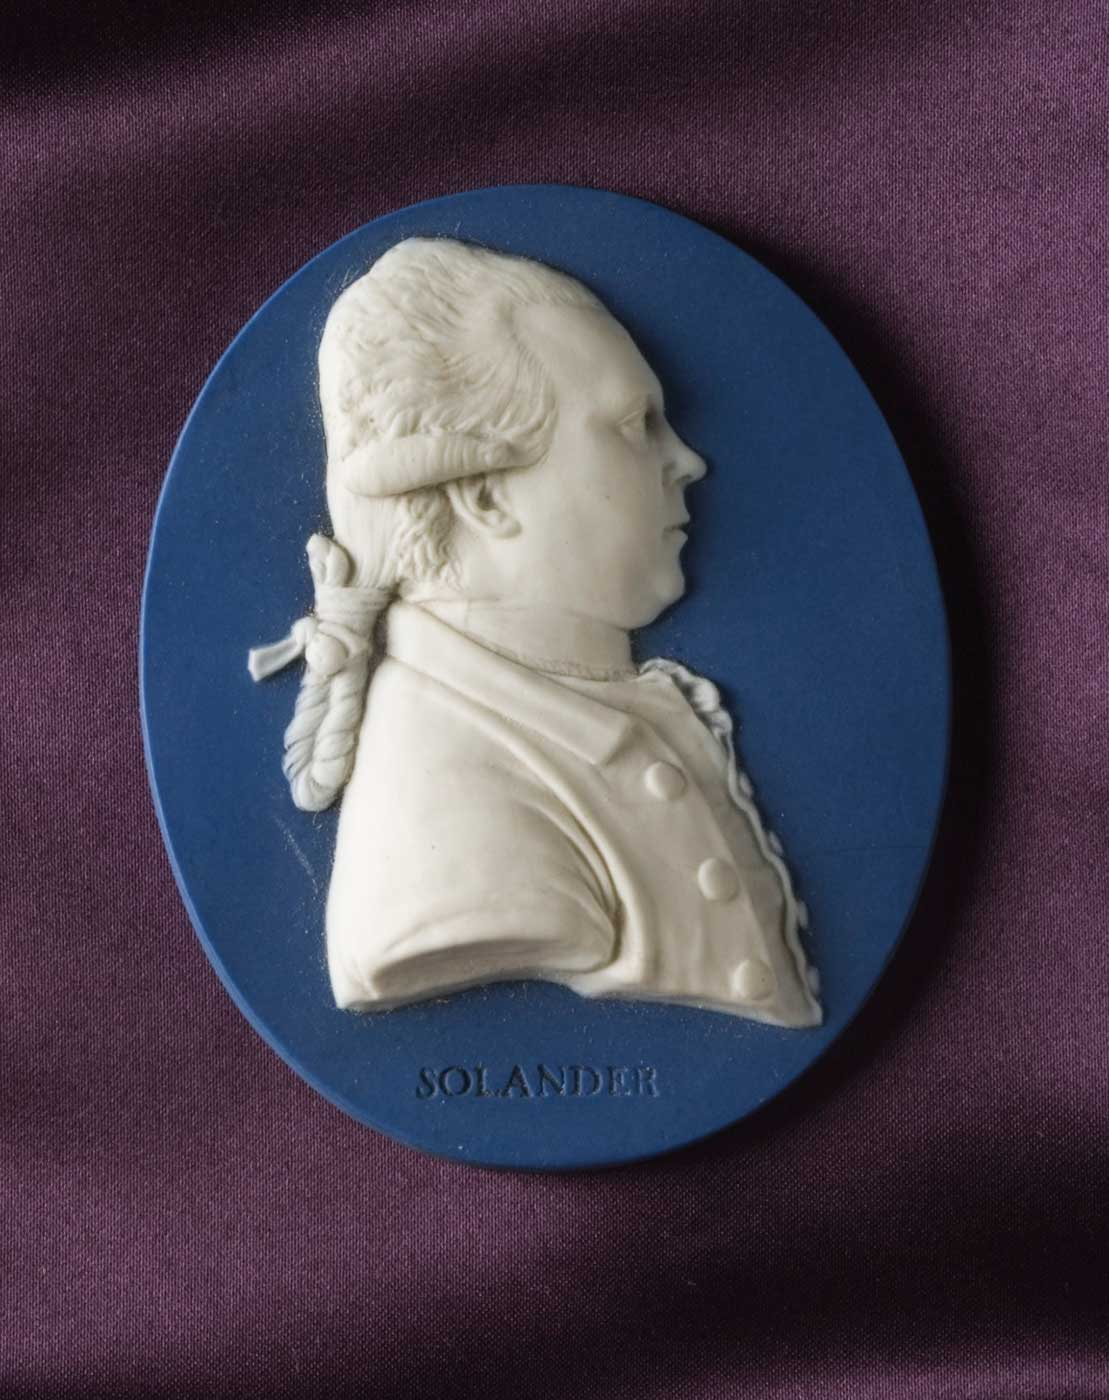 Oval blue jasper medallion decorated with a portrait of Dr Daniel Carl Solander in white jasper, with a stamped impression below the portrait which reads 'SOLANDER'.  - click to view larger image